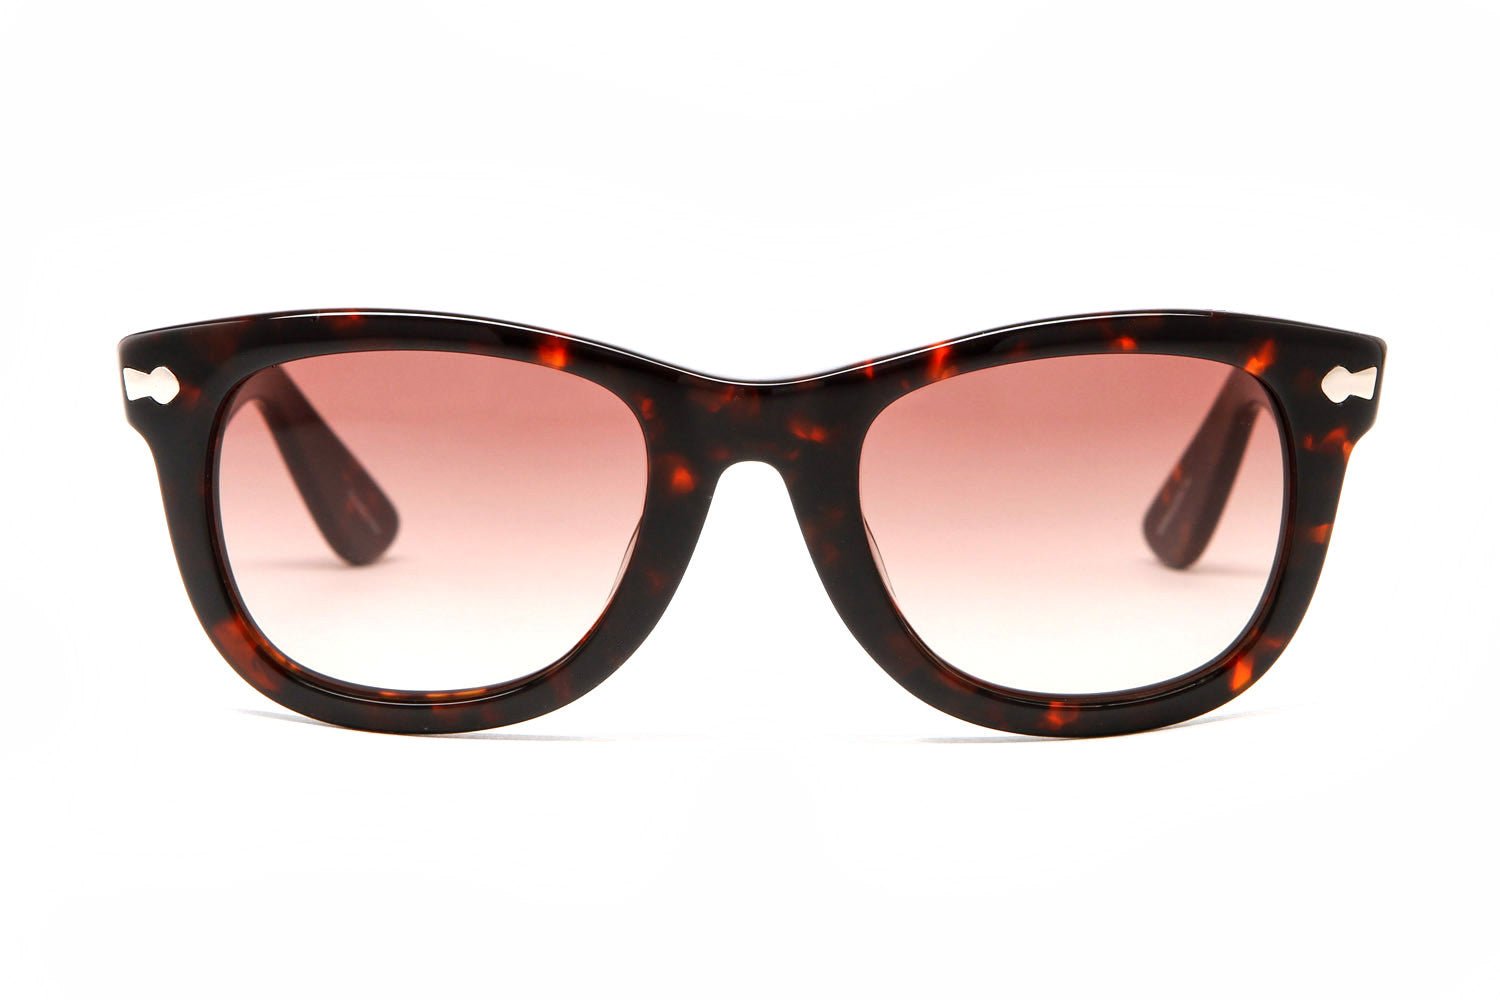 DETOXSUNGLASSES(DARKTORTOISE/BRONZEGRADIENT)